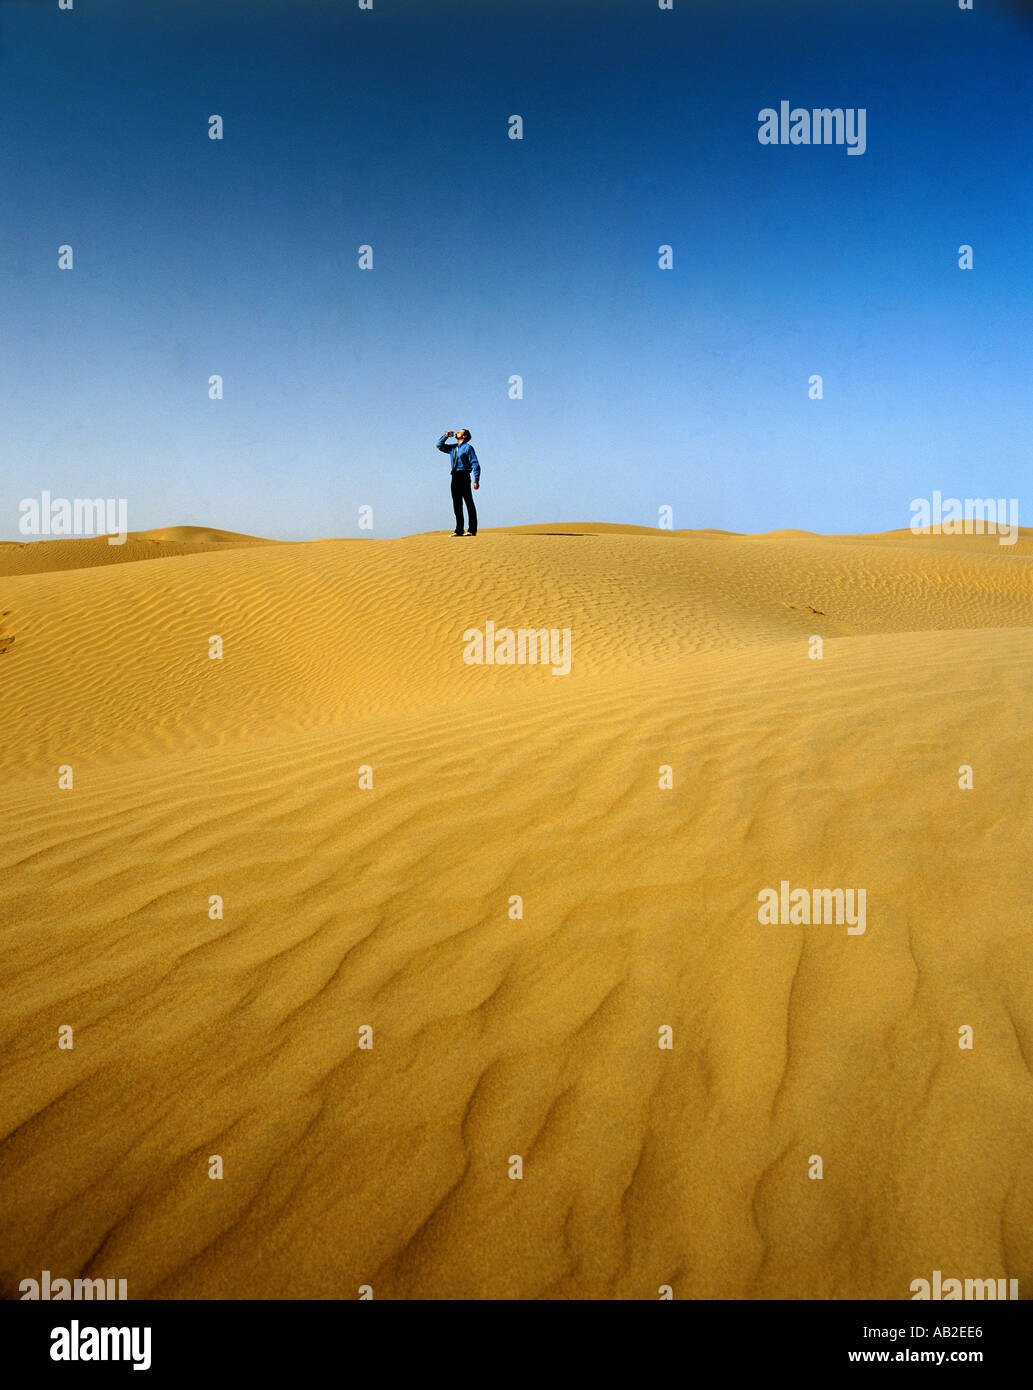 Man in desert drinking from a bottle - Stock Image